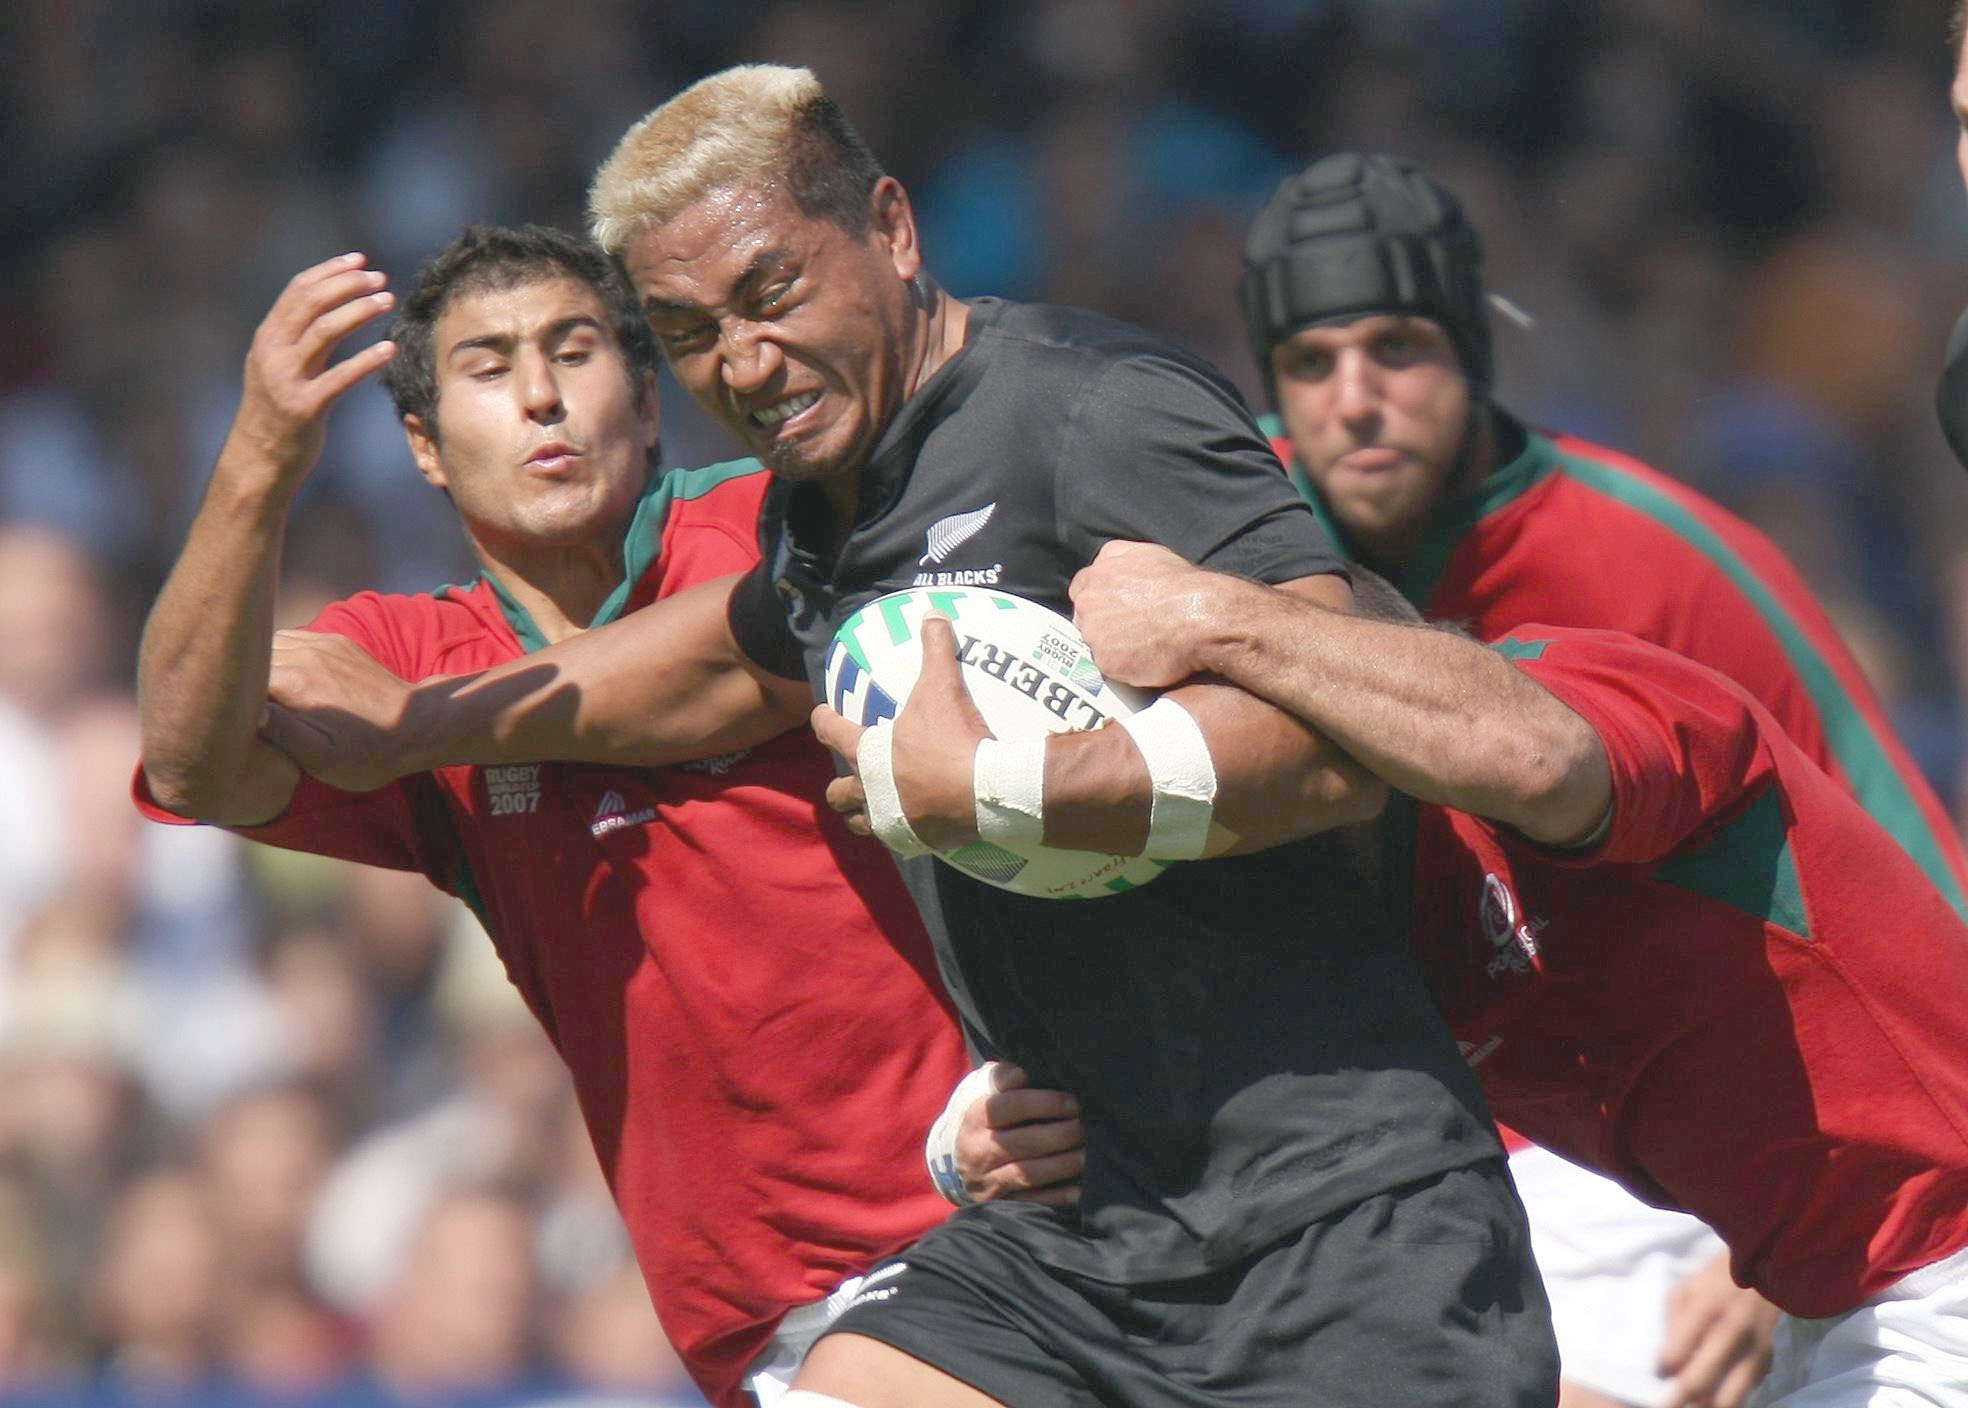 Kill Collins: New Zealand's Jerry Collins breaks through the Portugal defense during a Rugby World Cup match in September 2007 in France. Collins was arrested last month after pulling a couple of knives in a store in Hamamatsu, Shizuoka. He later said that the knives were for protection and that a local gang had threatened to kill him. | AP